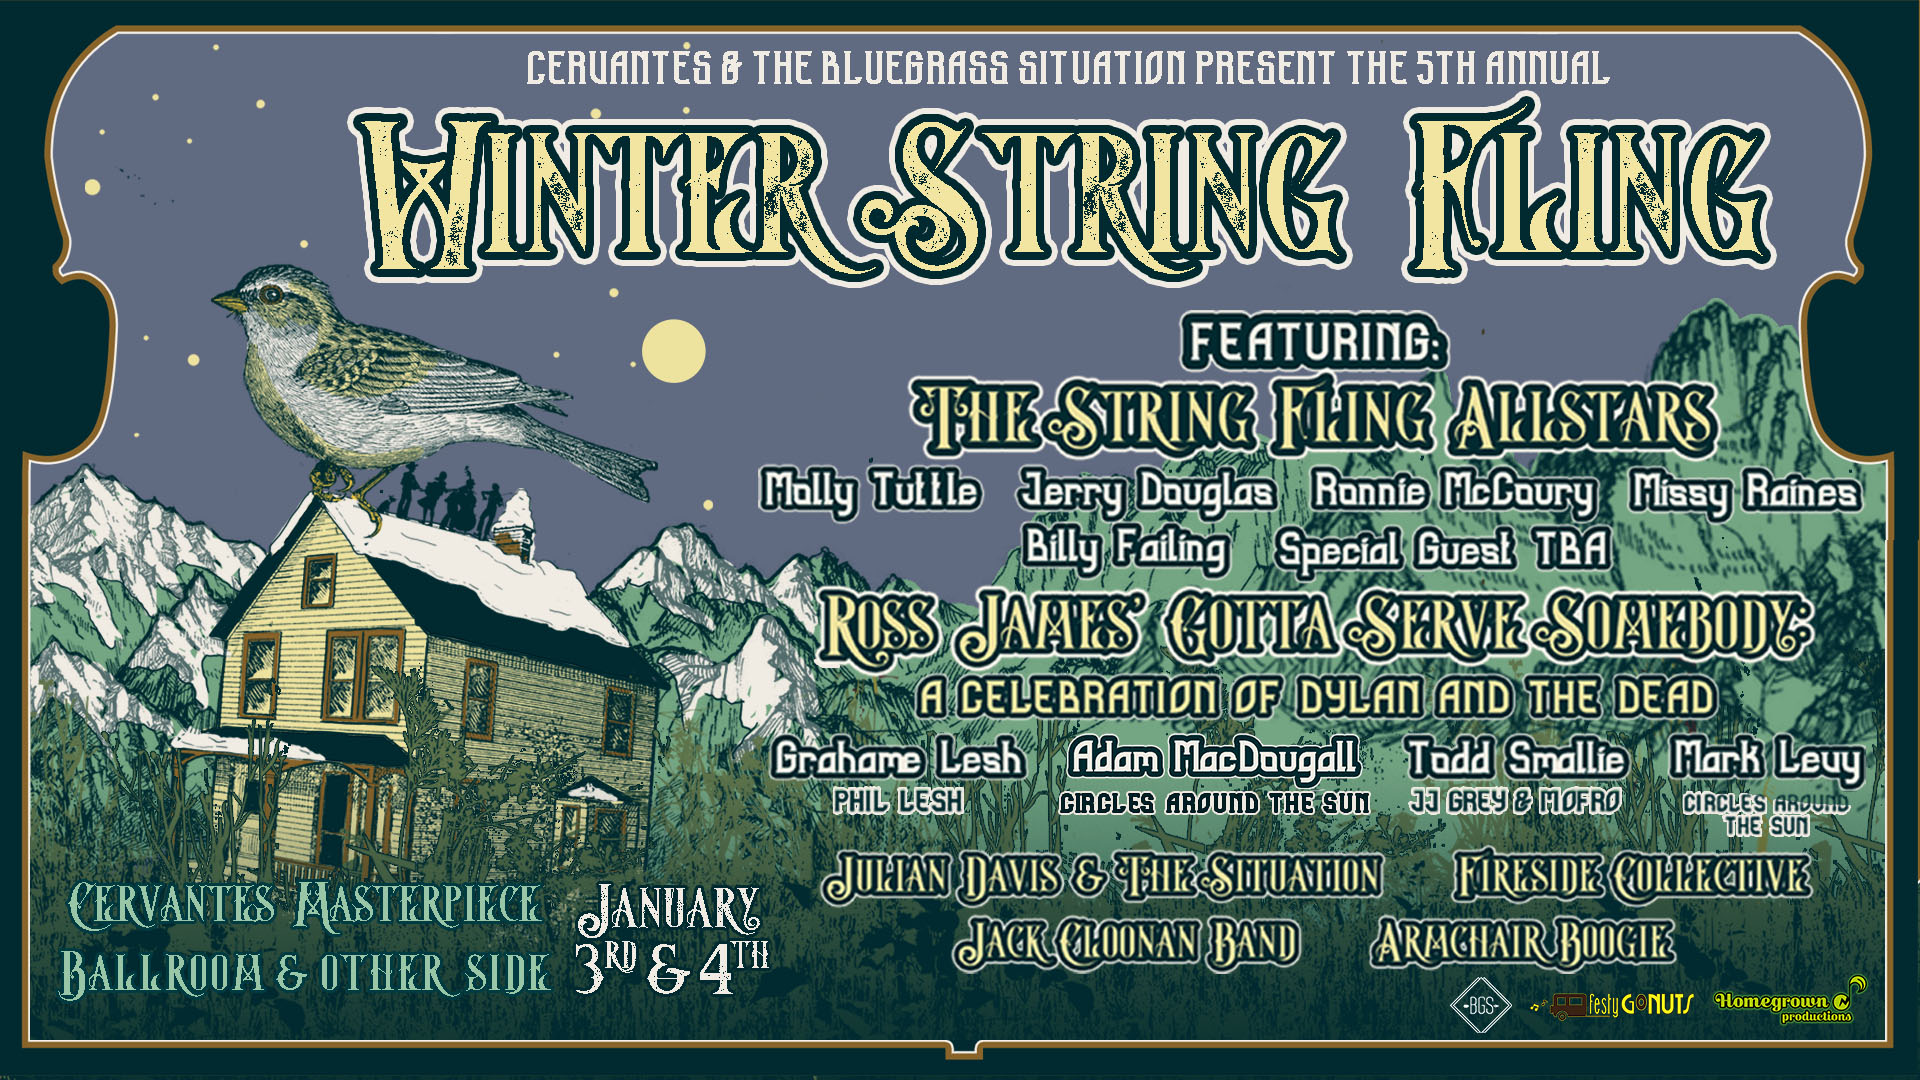 GIVEAWAY: Win tickets to the Winter String Fling @ Cervantes Masterpiece Ballroom & The Other Side (Denver) 1/3 & 1/4